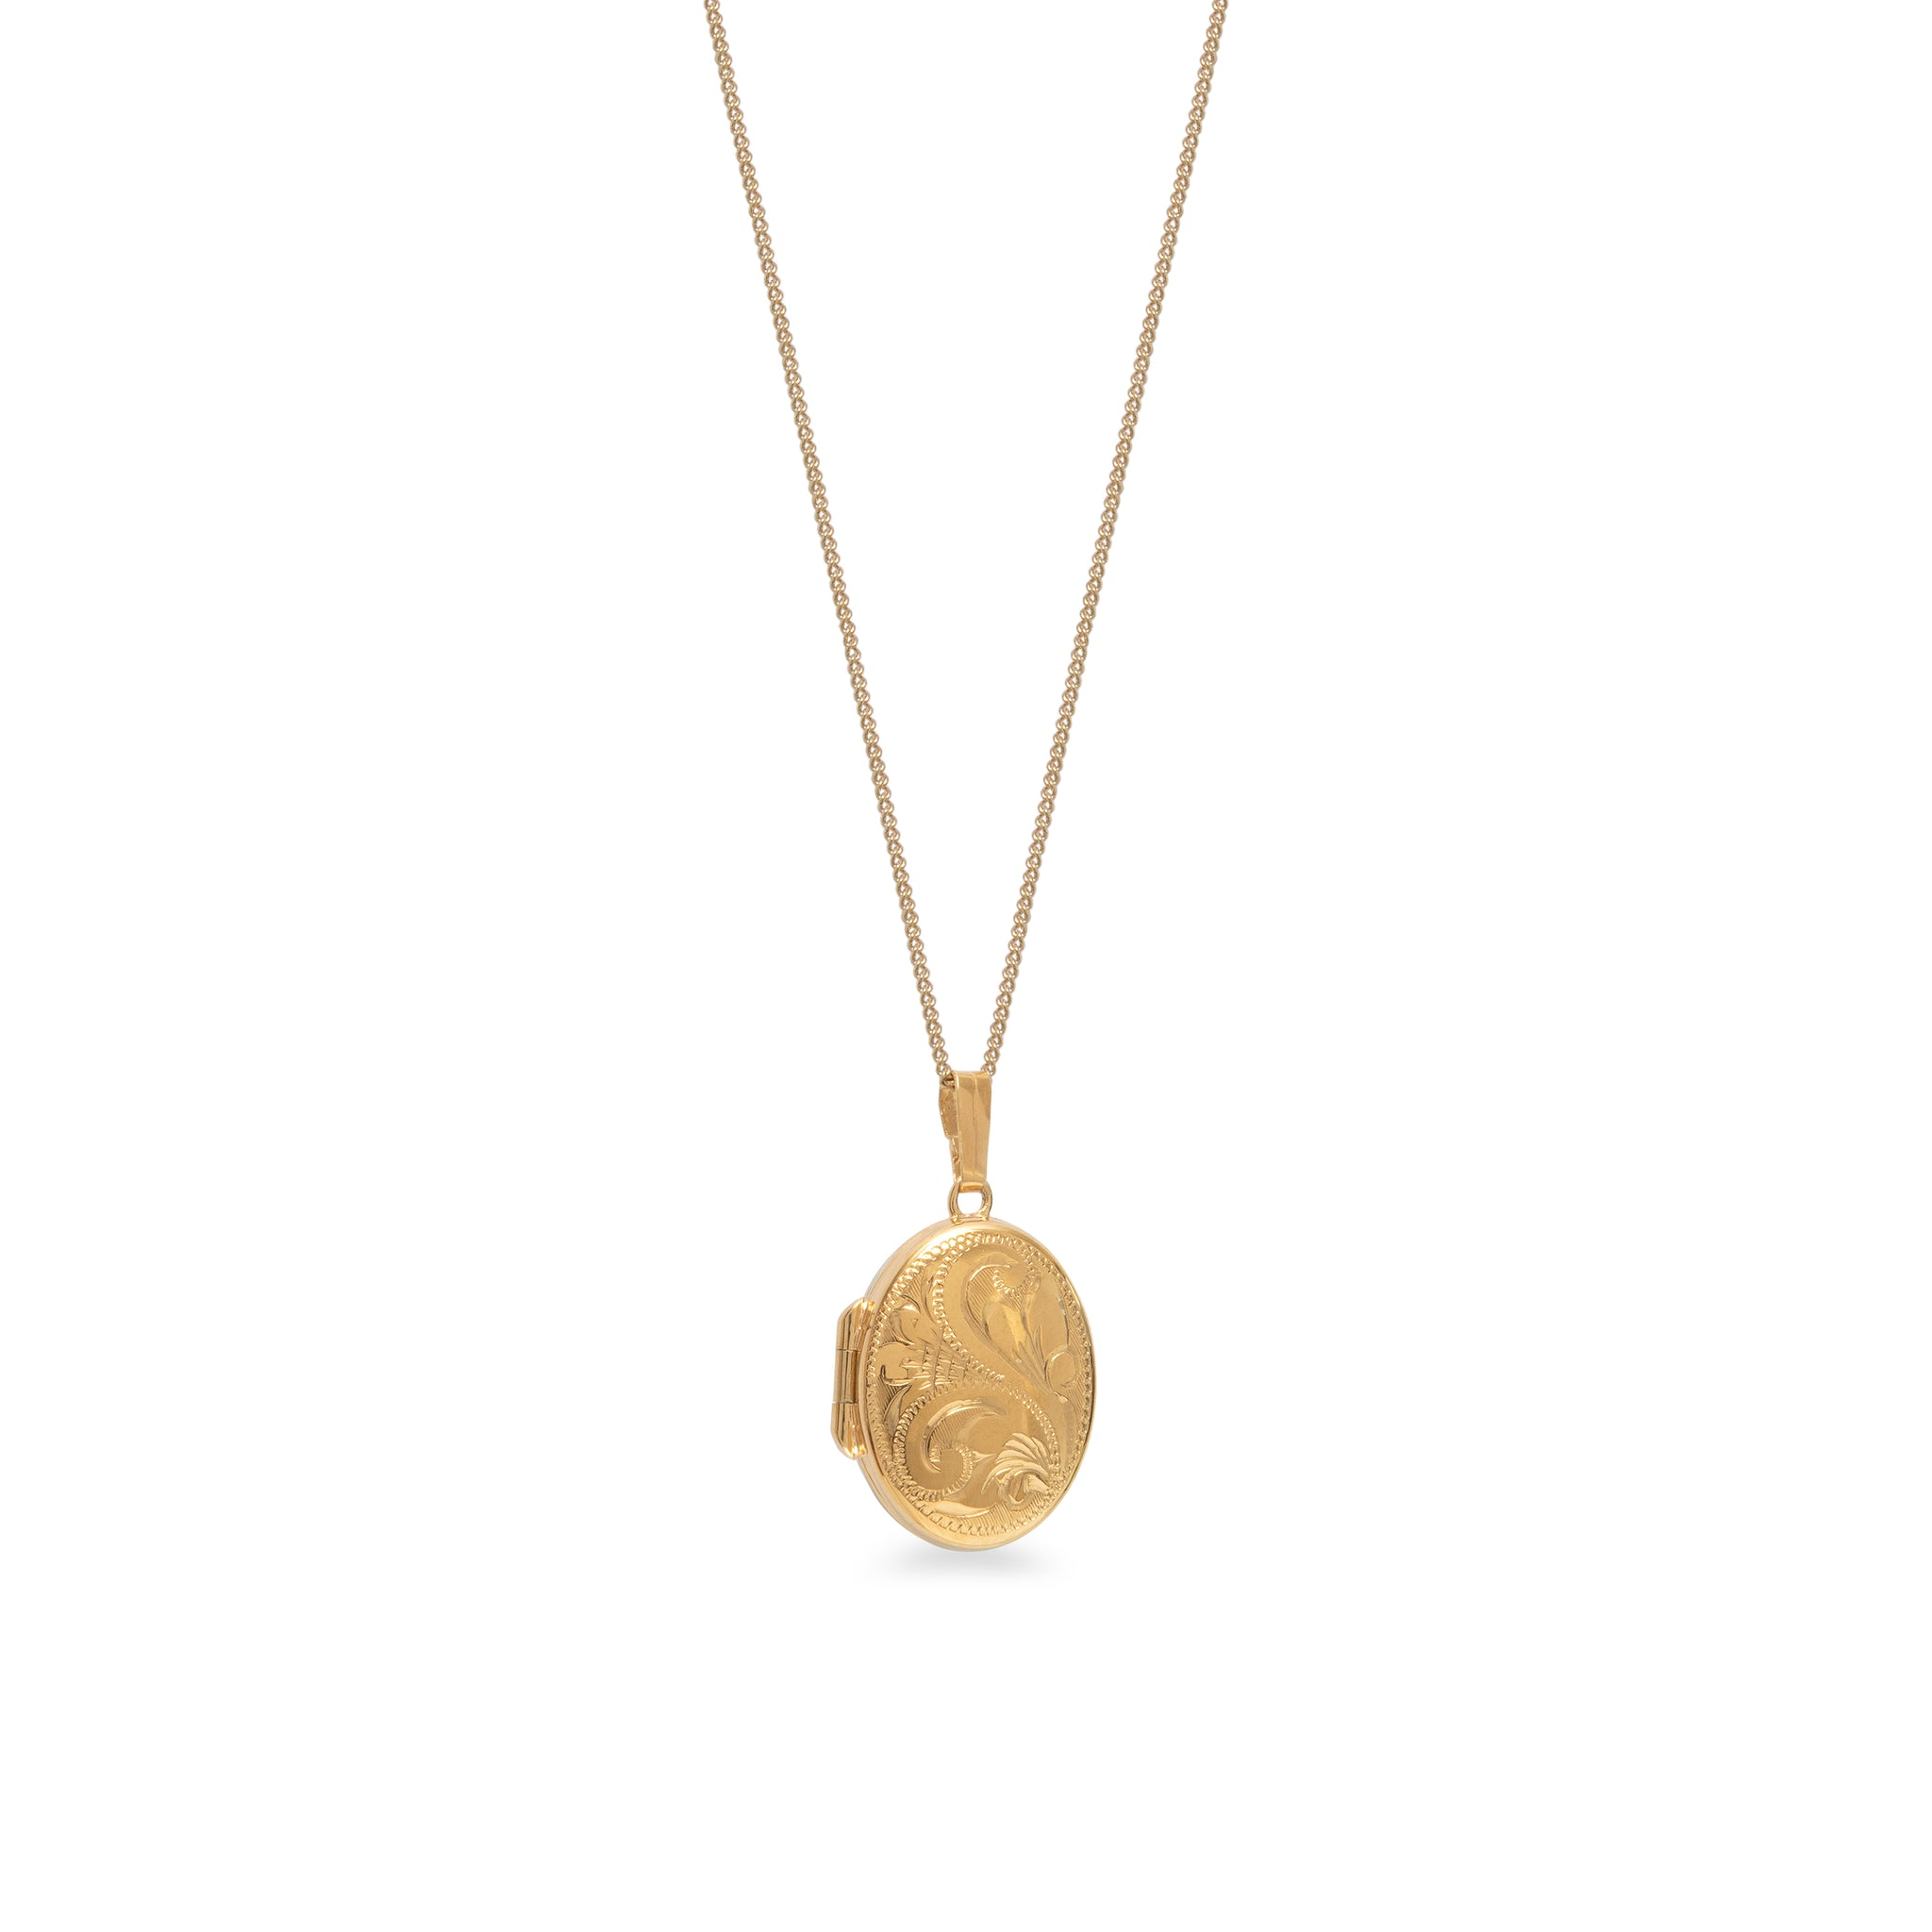 Engraved Oval Locket Necklace Rolled Gold